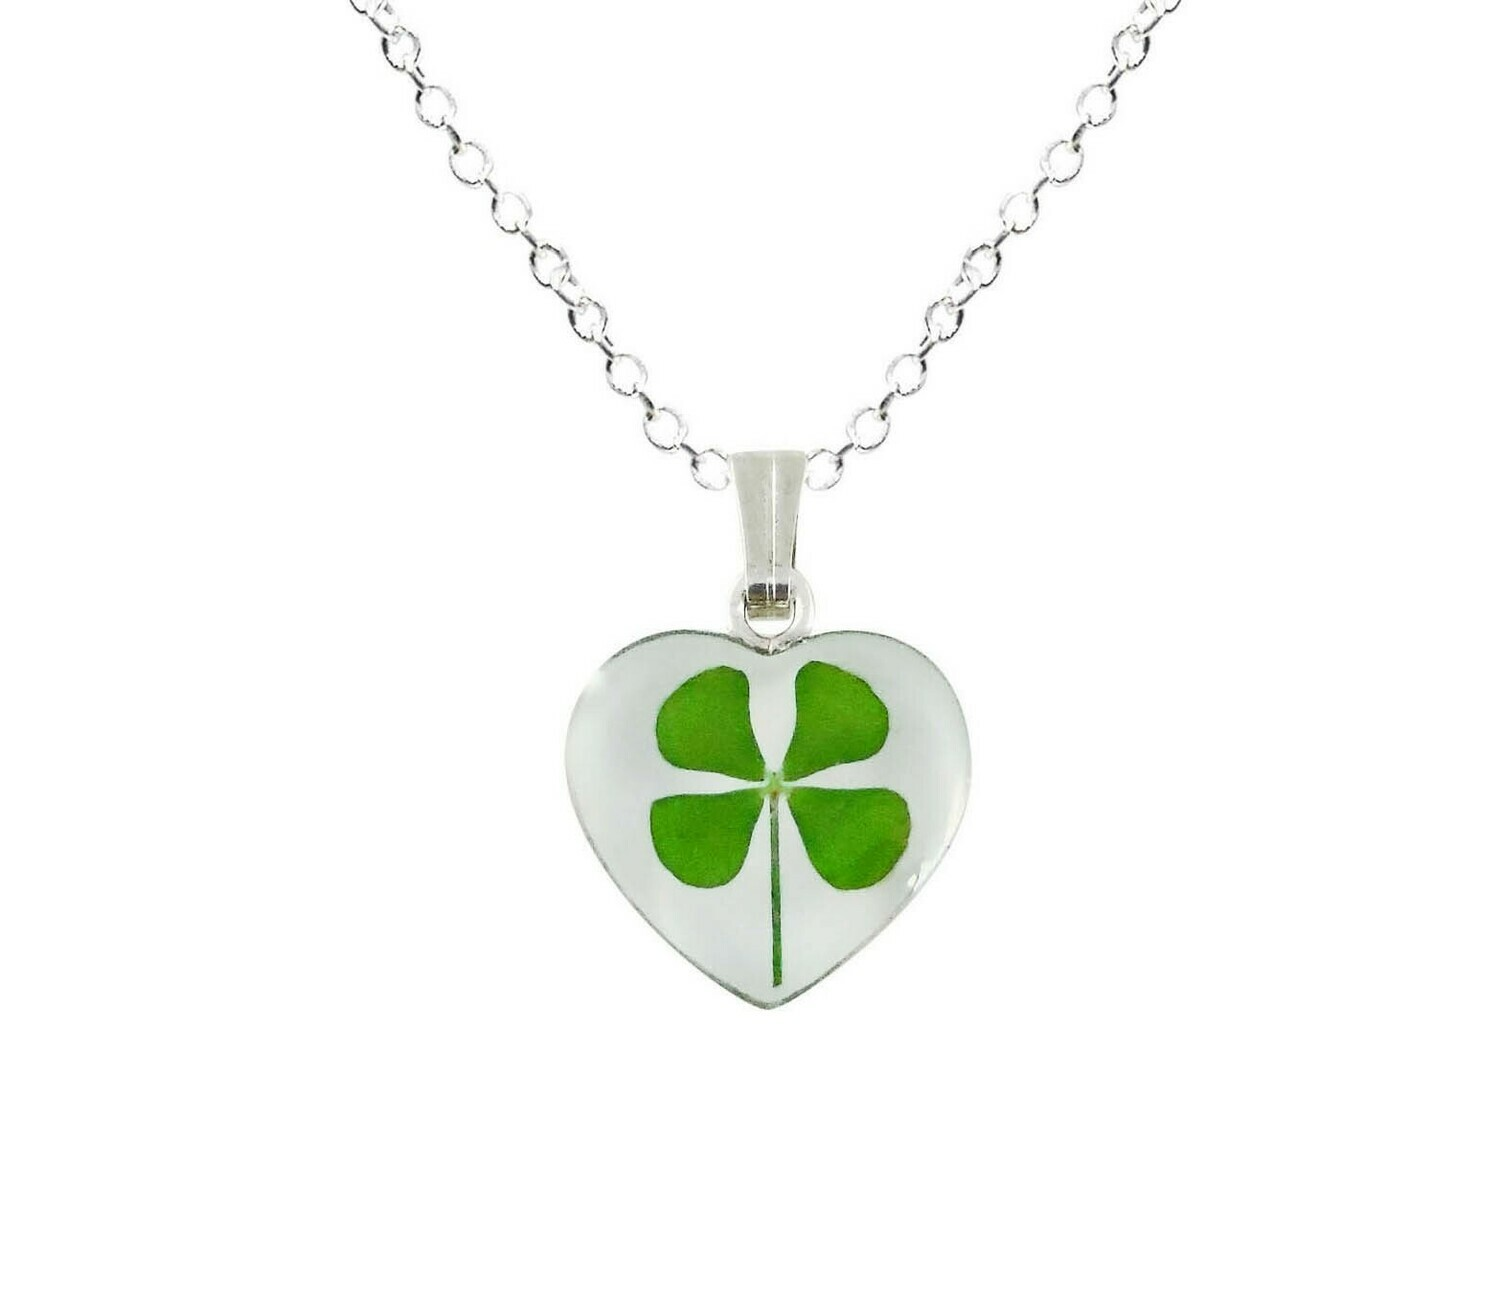 Clover Necklace, Small Heart, White Background